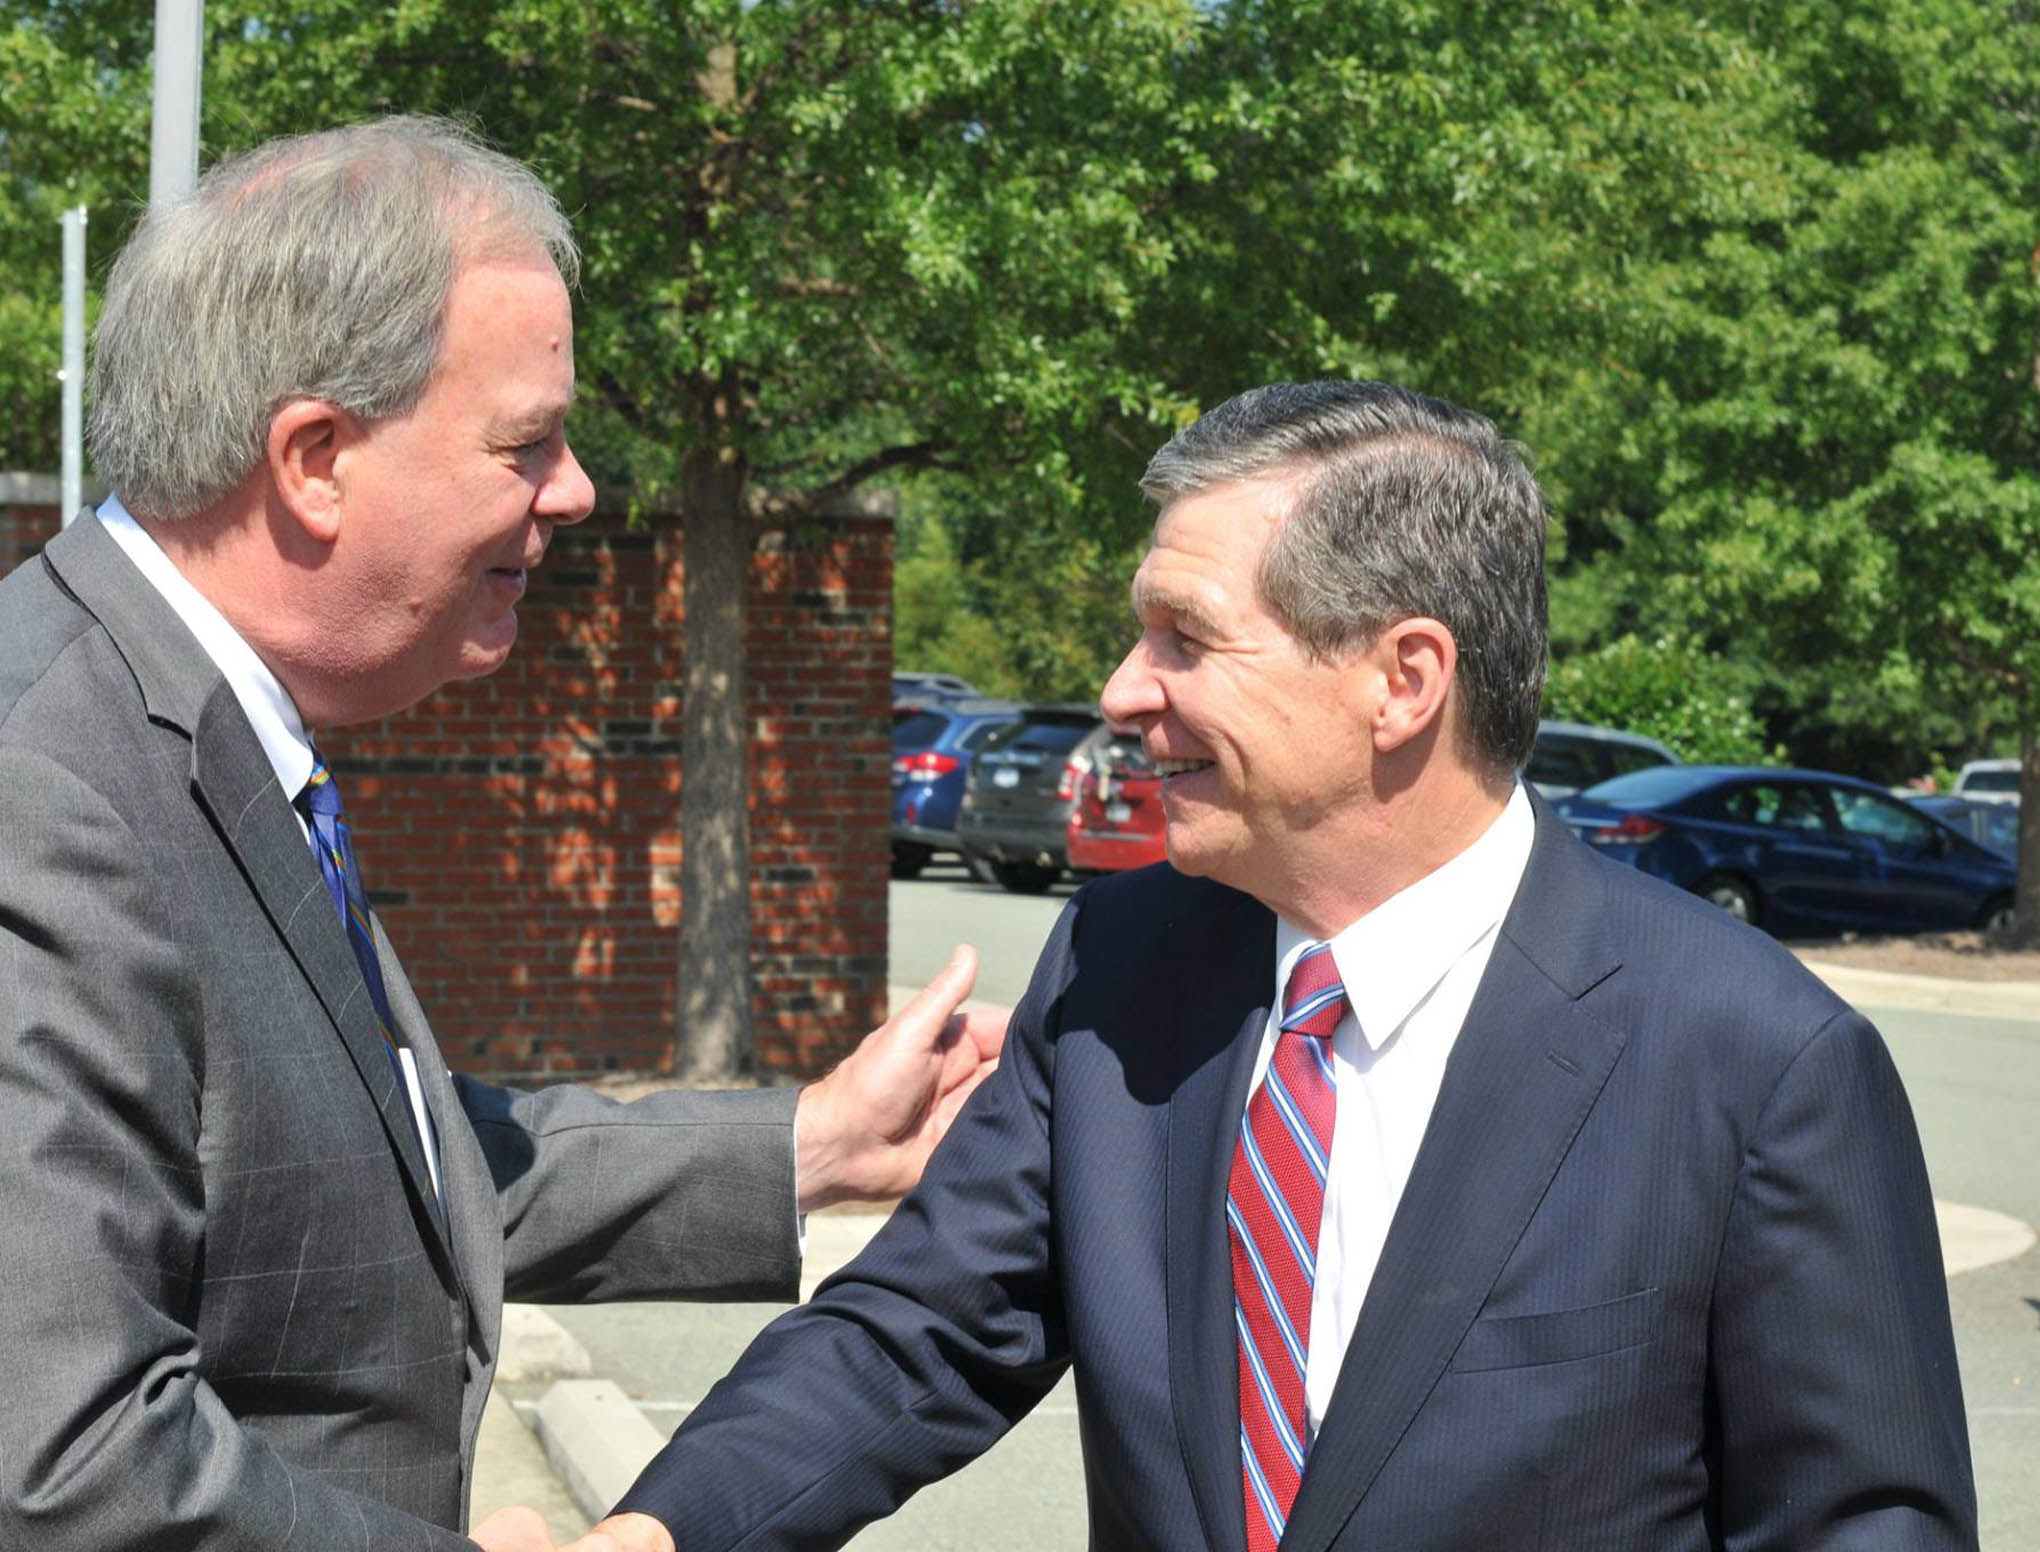 Click to enlarge,  Central Carolina Community College President Dr. T. Eston Marchant (left) greets N.C. Gov. Roy Cooper as he arrived at the CCCC Chatham Main Campus in Pittsboro on Thursday, Aug. 23.